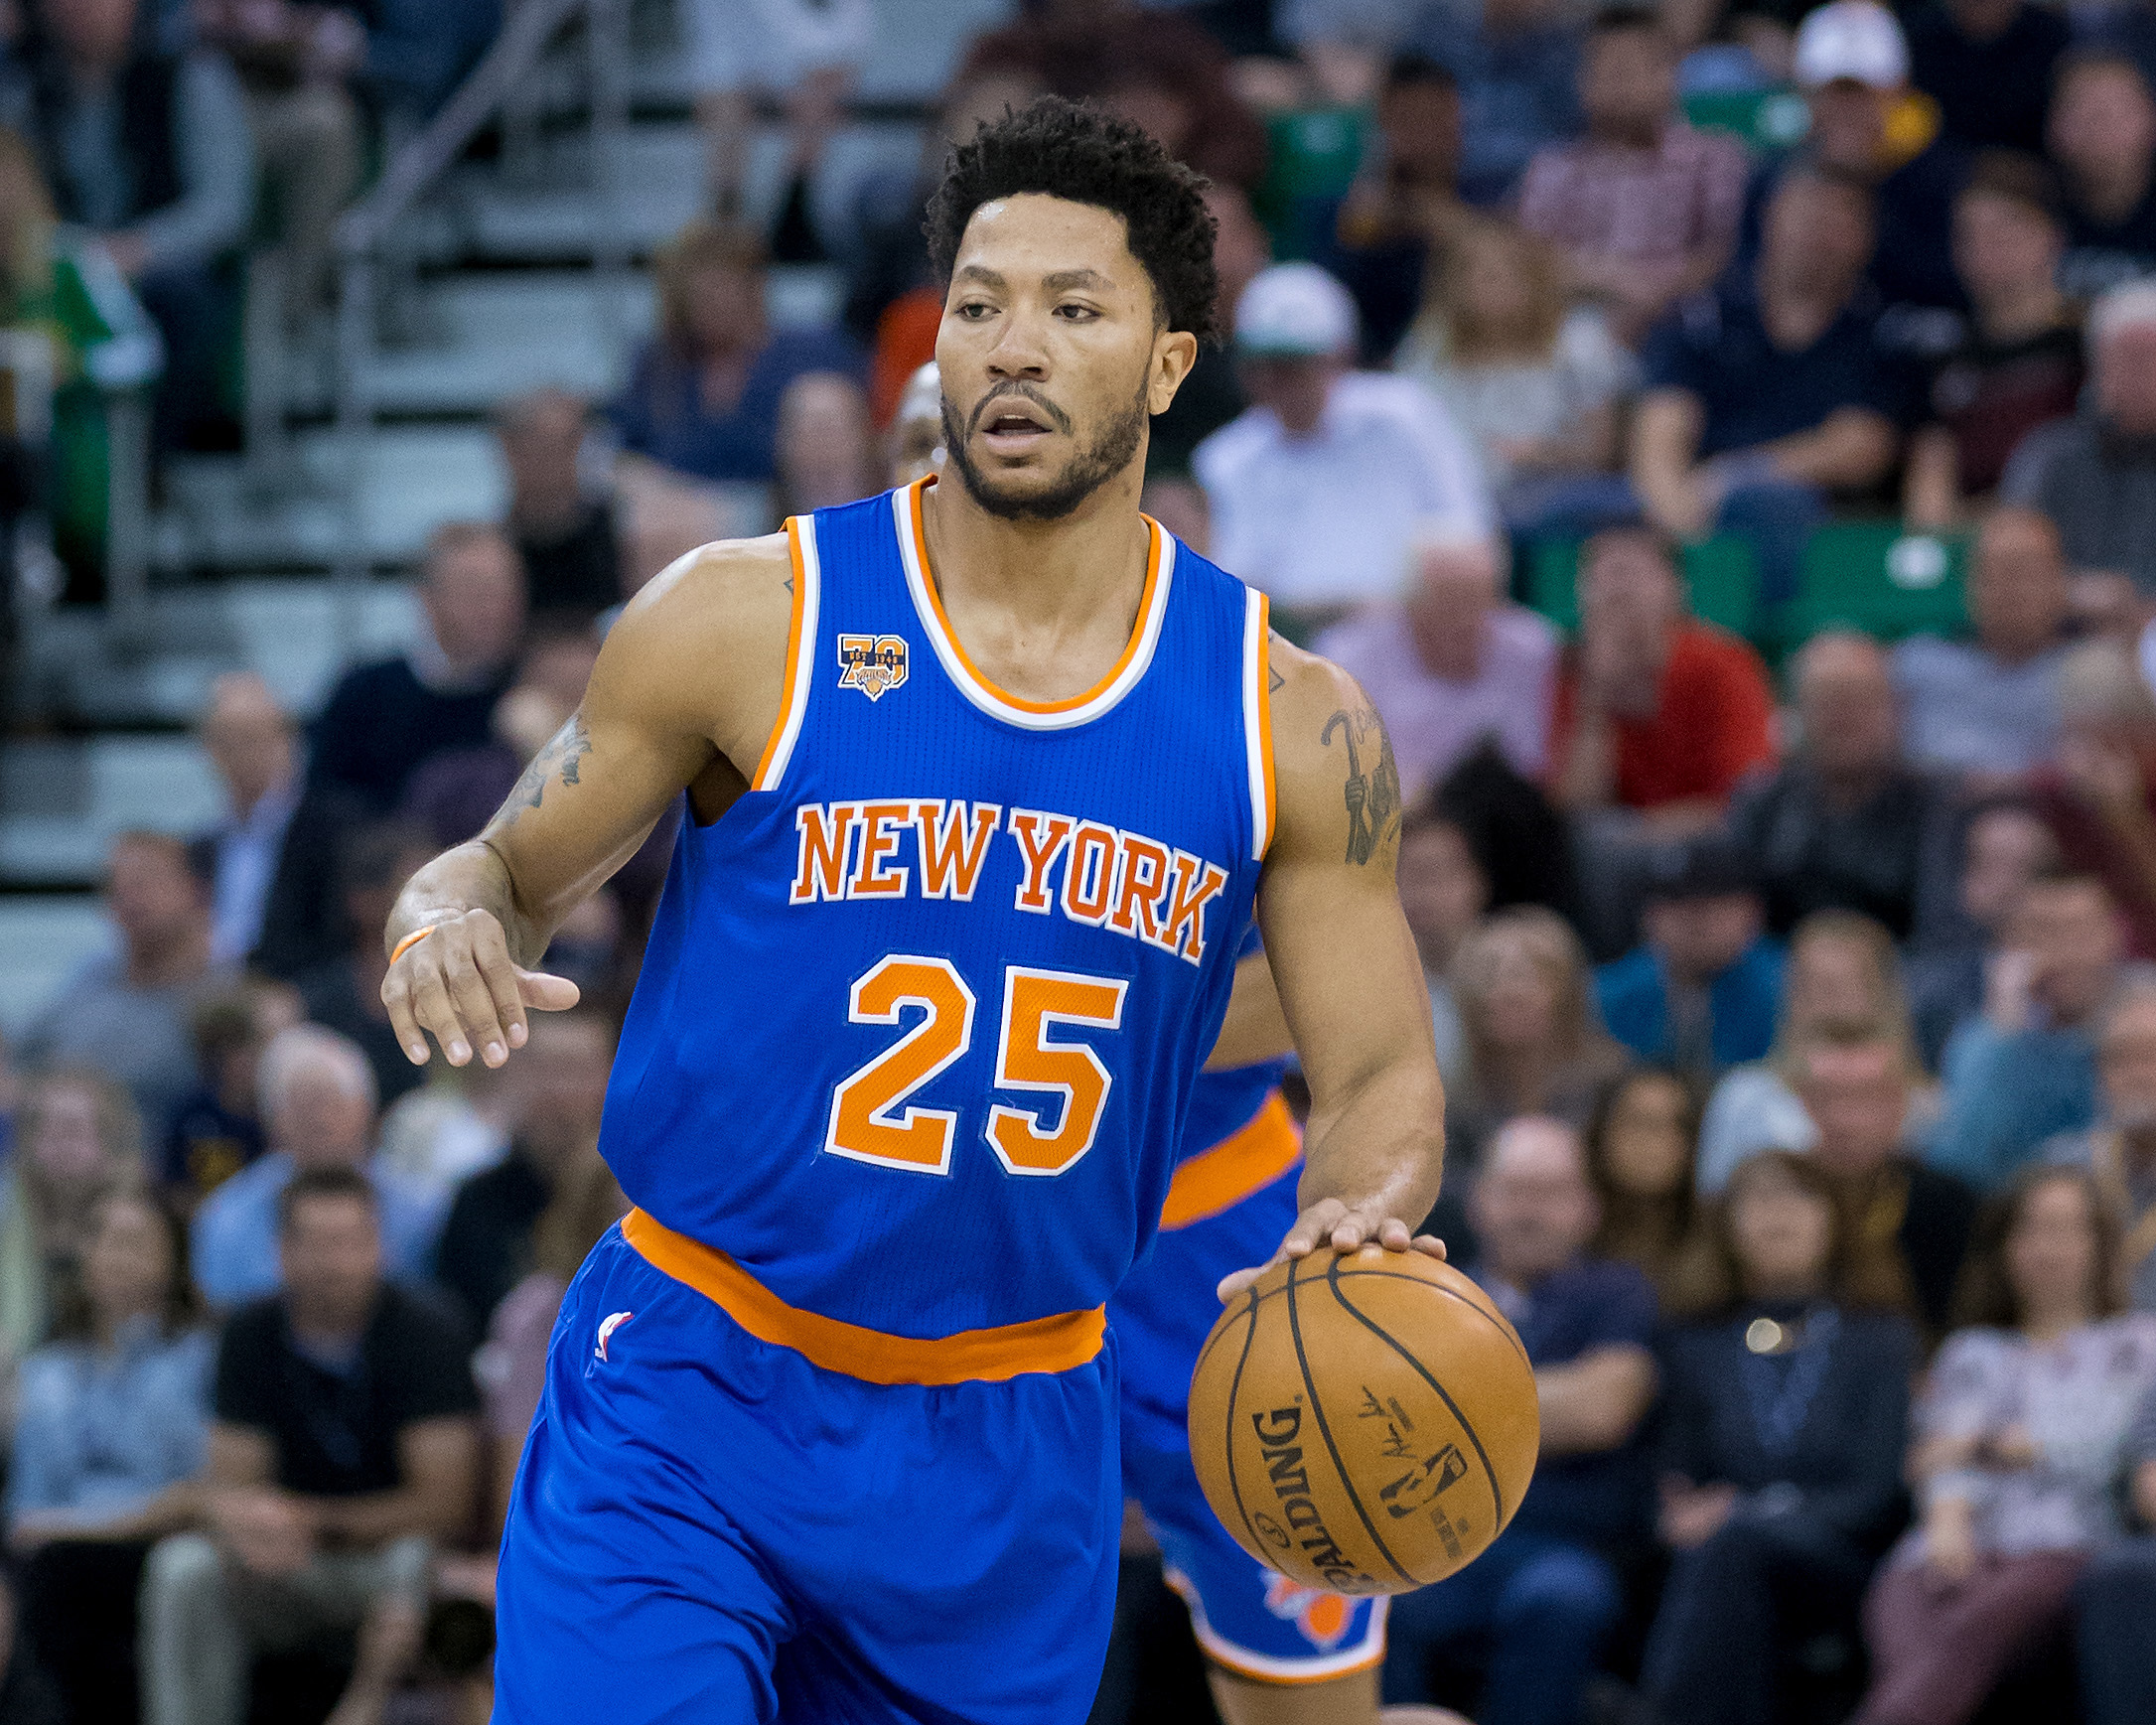 9965406-nba-new-york-knicks-at-utah-jazz